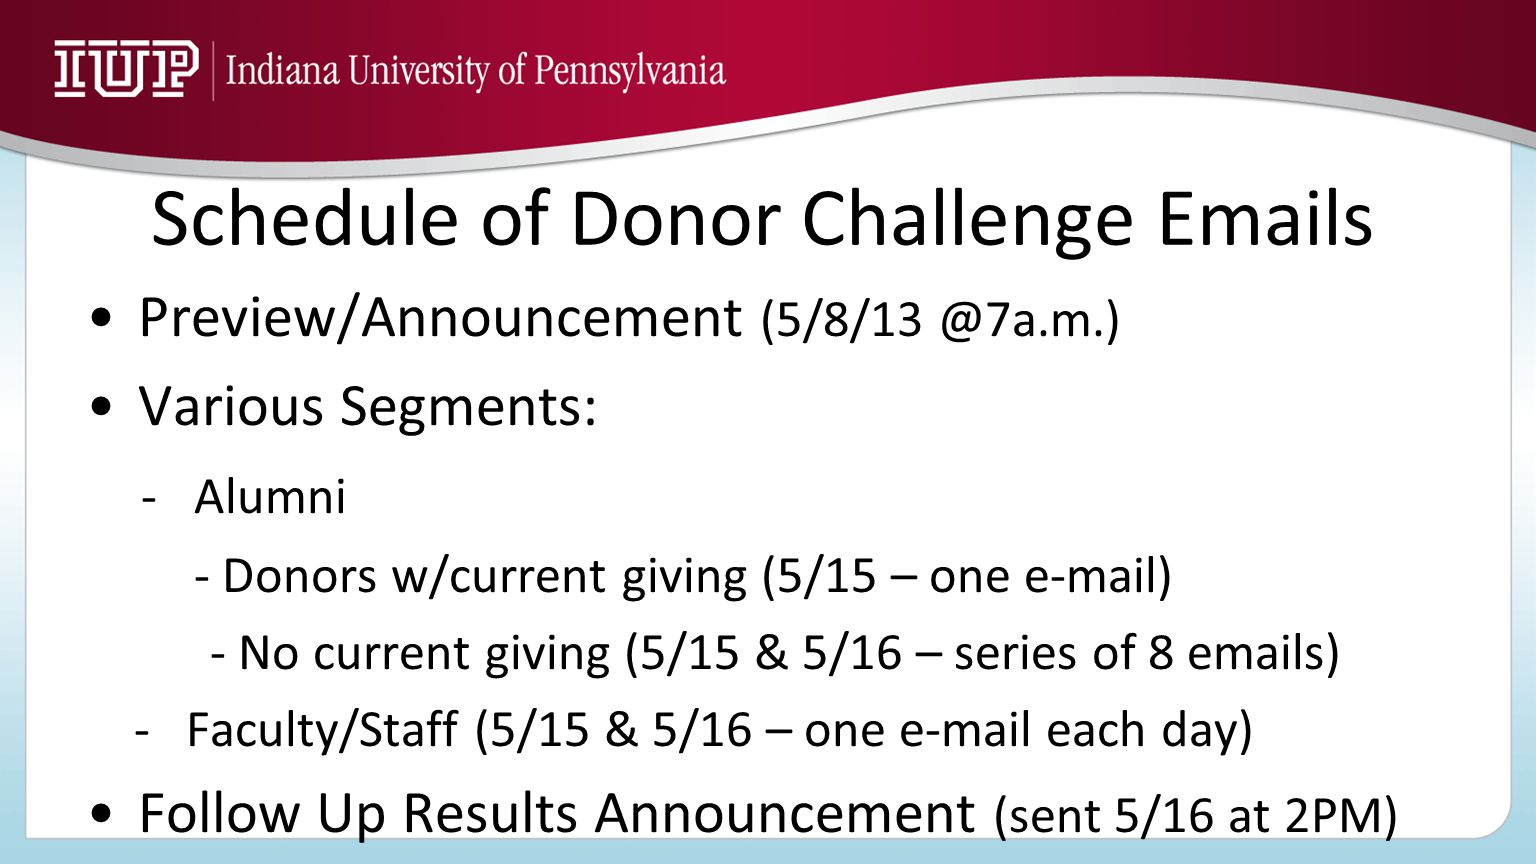 Schedule of Donor Challenge Emails Preview/Announcement (5/8/13 @7a.m.) Various Segments: - Alumni - Donors w/current giving (5/15 – one e-mail) - No